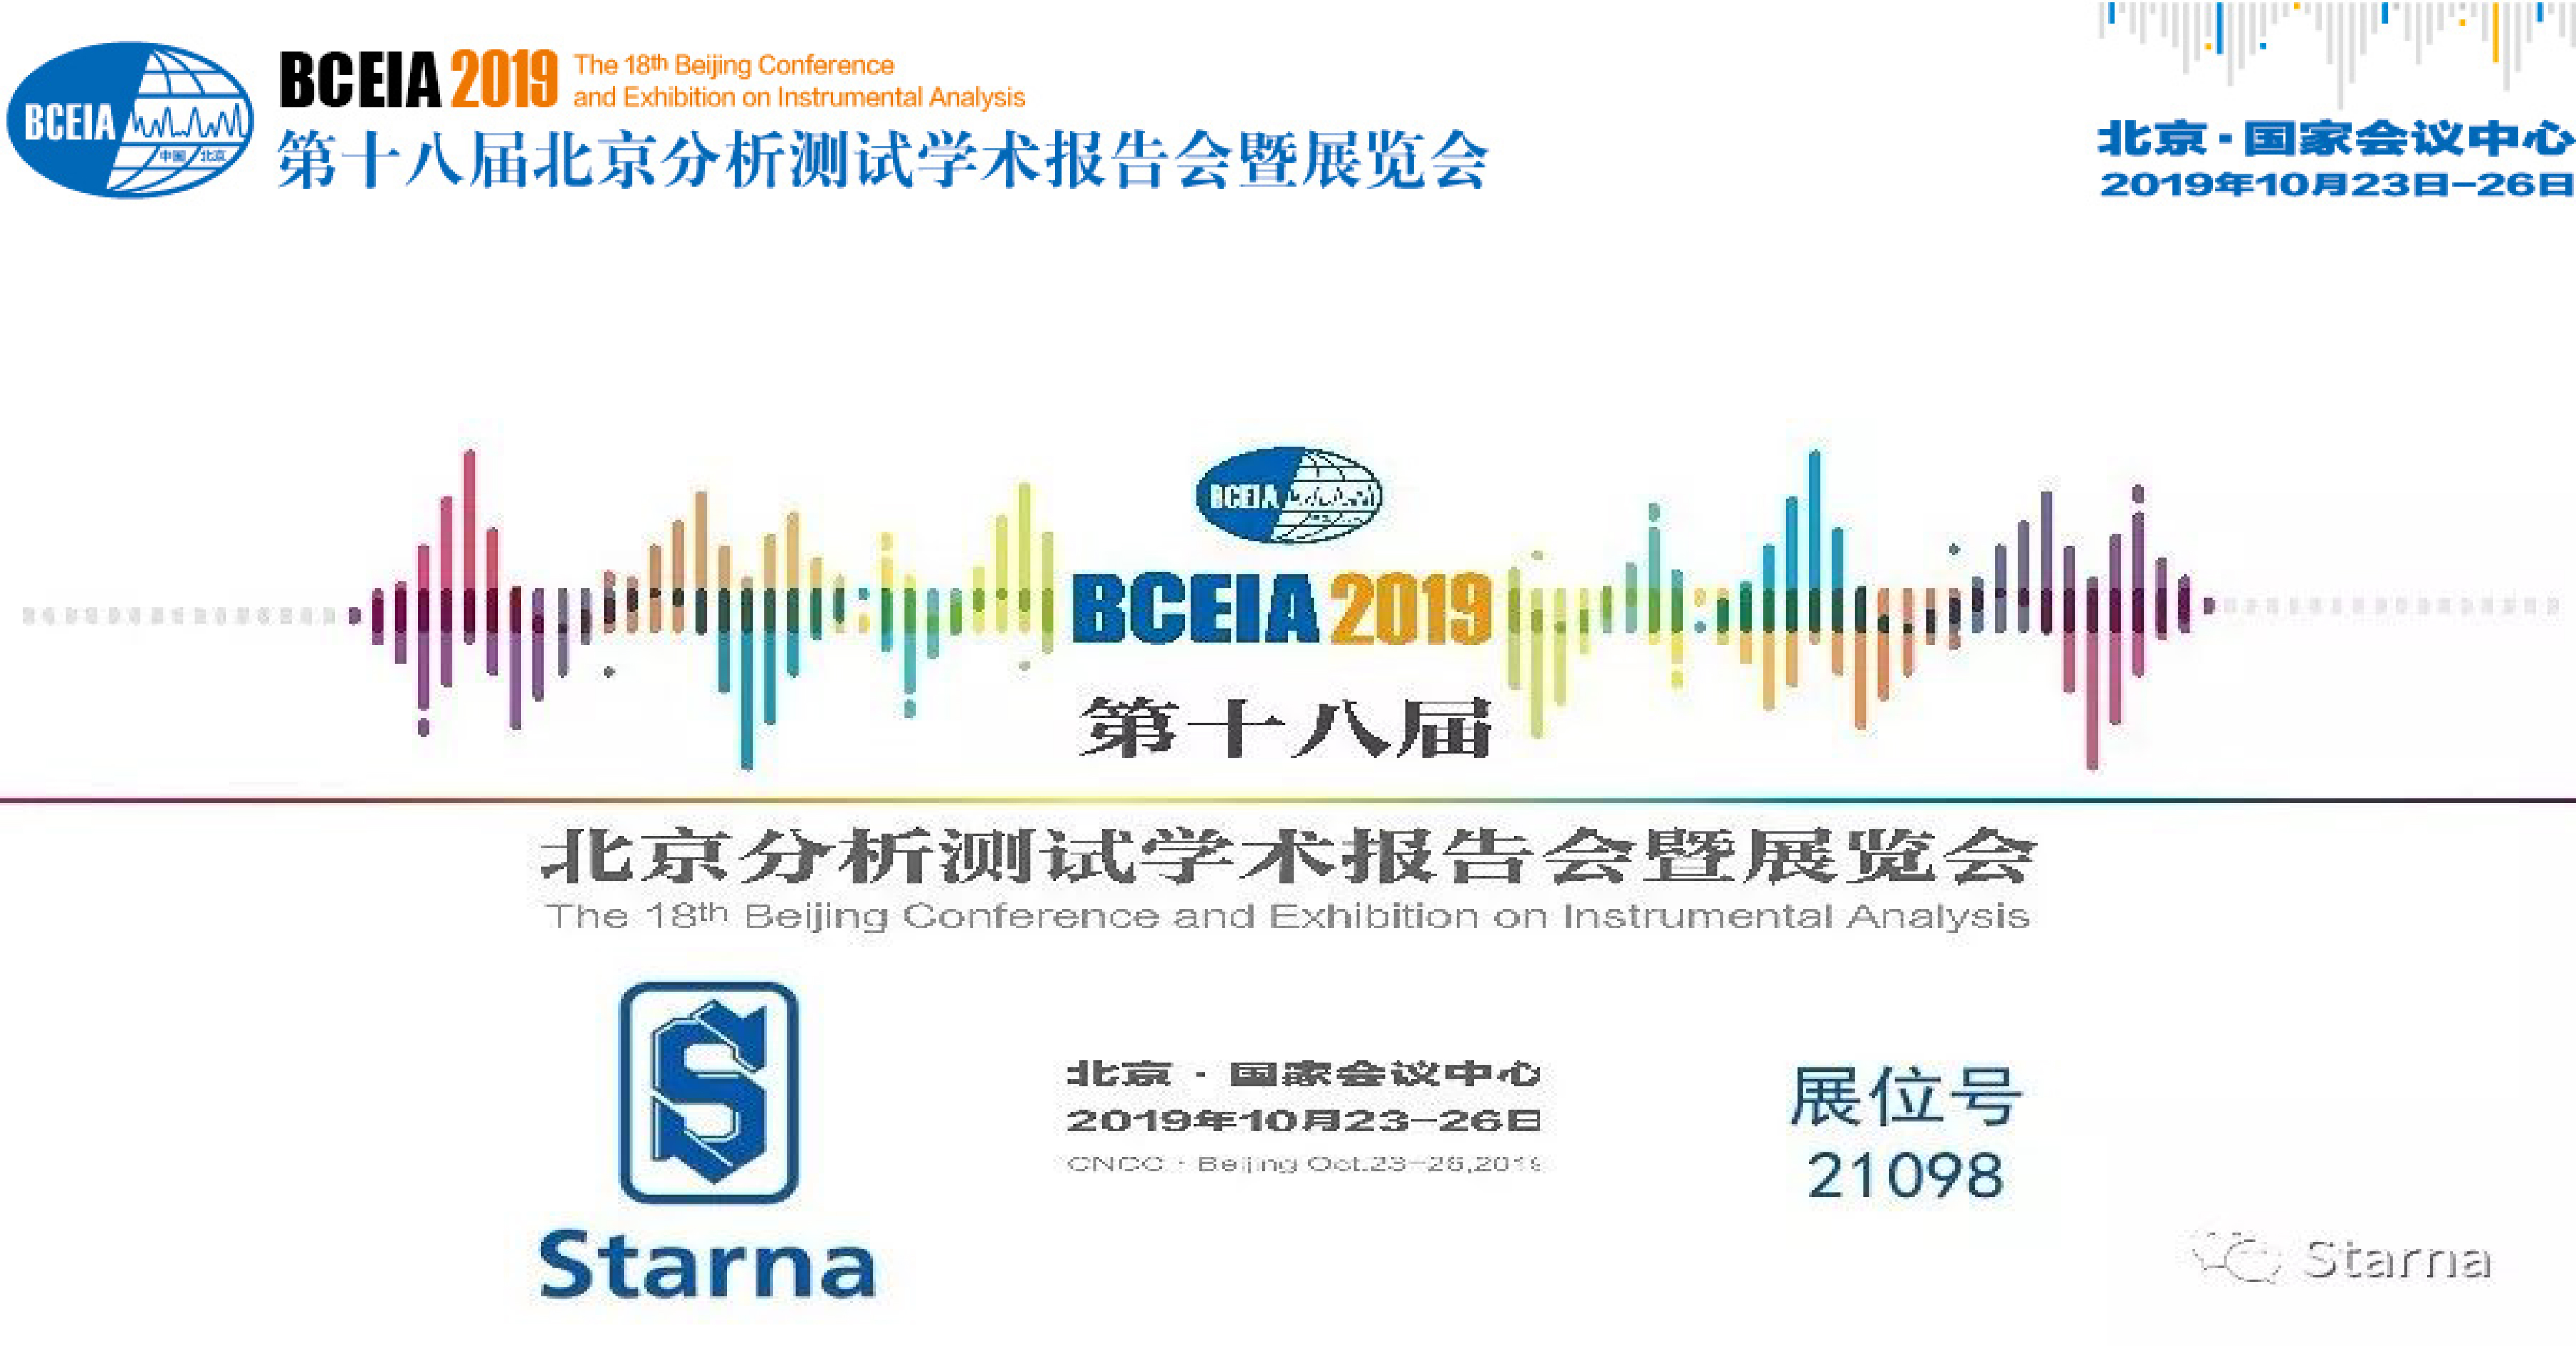 BCEIA 2019 Exhibition Starna booth 21098